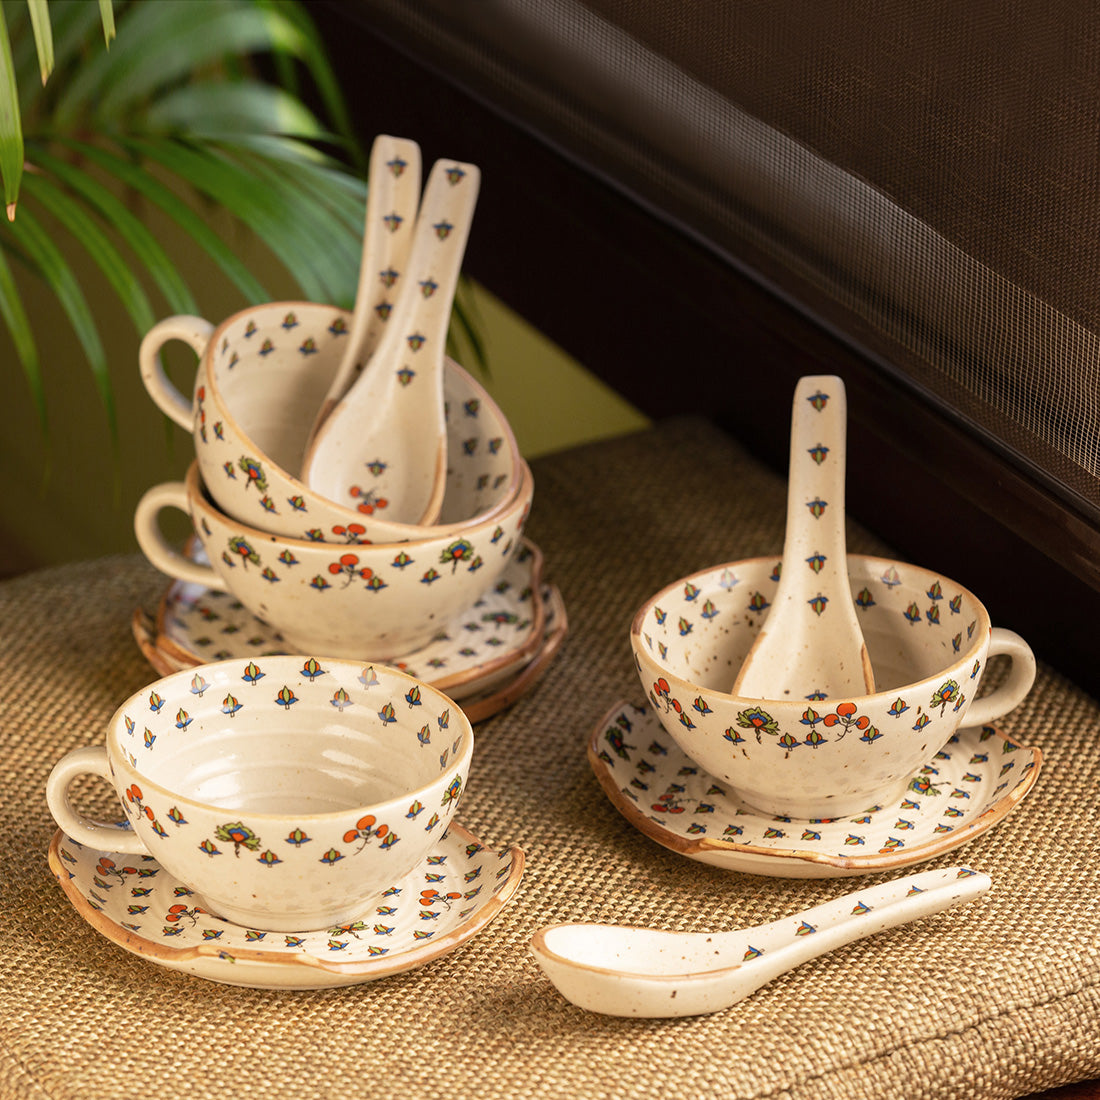 'Daawat-e-Taj' Handcrafted Ceramic Handled Soup Bowls With Saucers & Spoons (Set of 4, 220 ml, Microwave Safe)